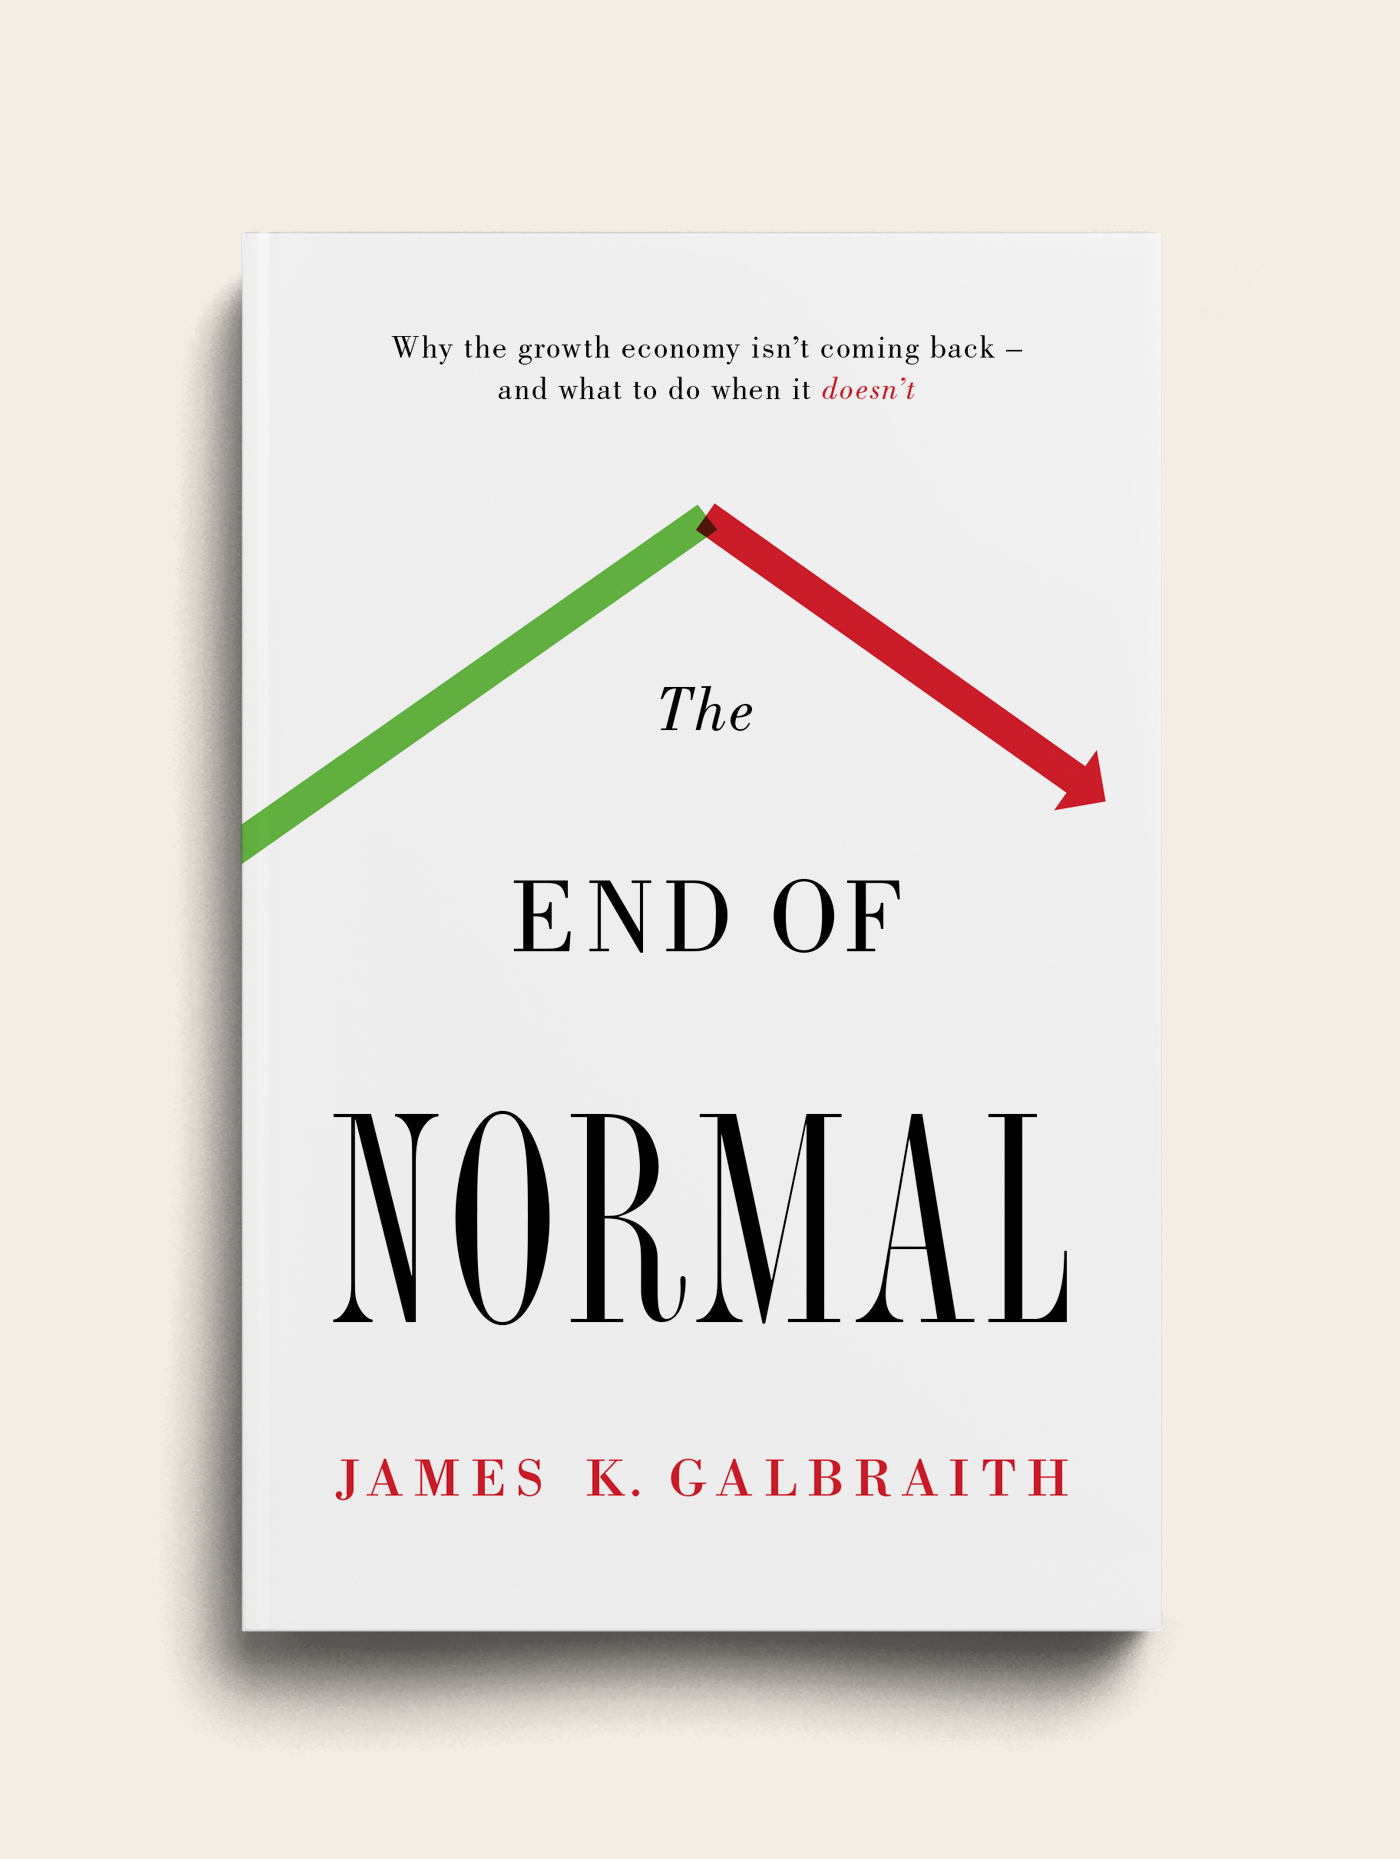 James K. Galbraith - The End of Normal Book Cover - The Heads of State